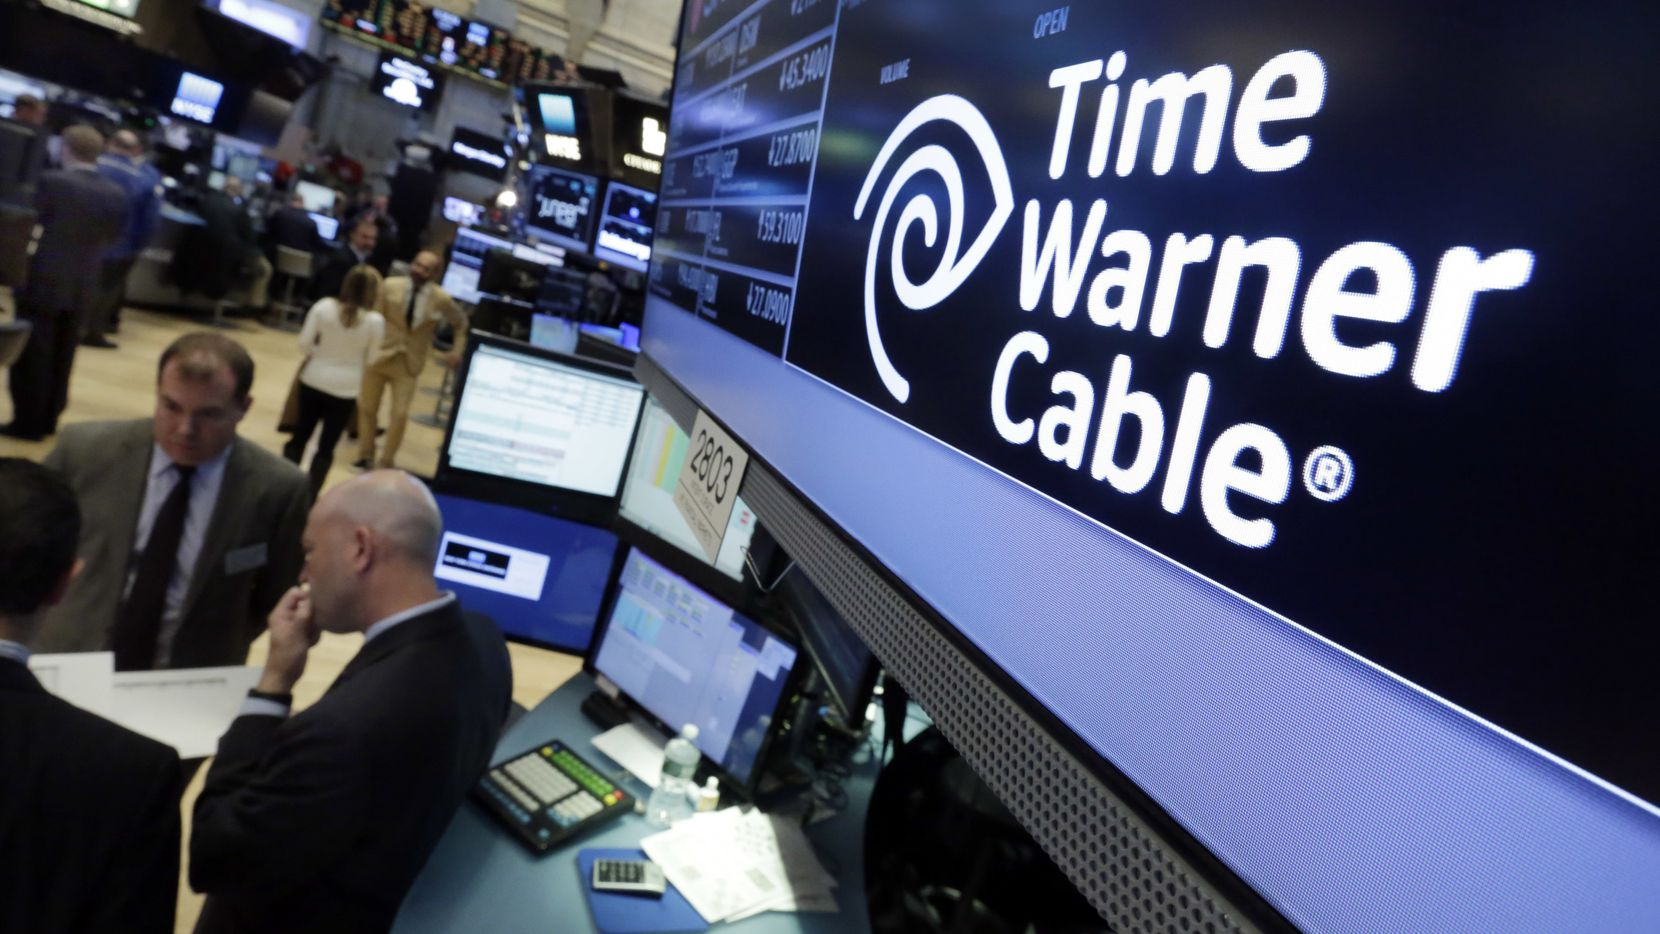 In this Tuesday, May 17, 2016, photo, the Time Warner Cable logo appears above the post where it trades on the floor of the New York Stock Exchange. Charter Communications is closing on its $67 billion acquisition of Time Warner Cable and Bright House Networks. The deals make Charter the second-largest home Internet provider and third-largest video provider in the U.S. Charter says its Spectrum brand will replace the Time Warner Cable and Bright House brands over the next 18 months or so. The name Time Warner will eventually be phased out and the company will be known as Charter Communications. (AP Photo/Richard Drew)